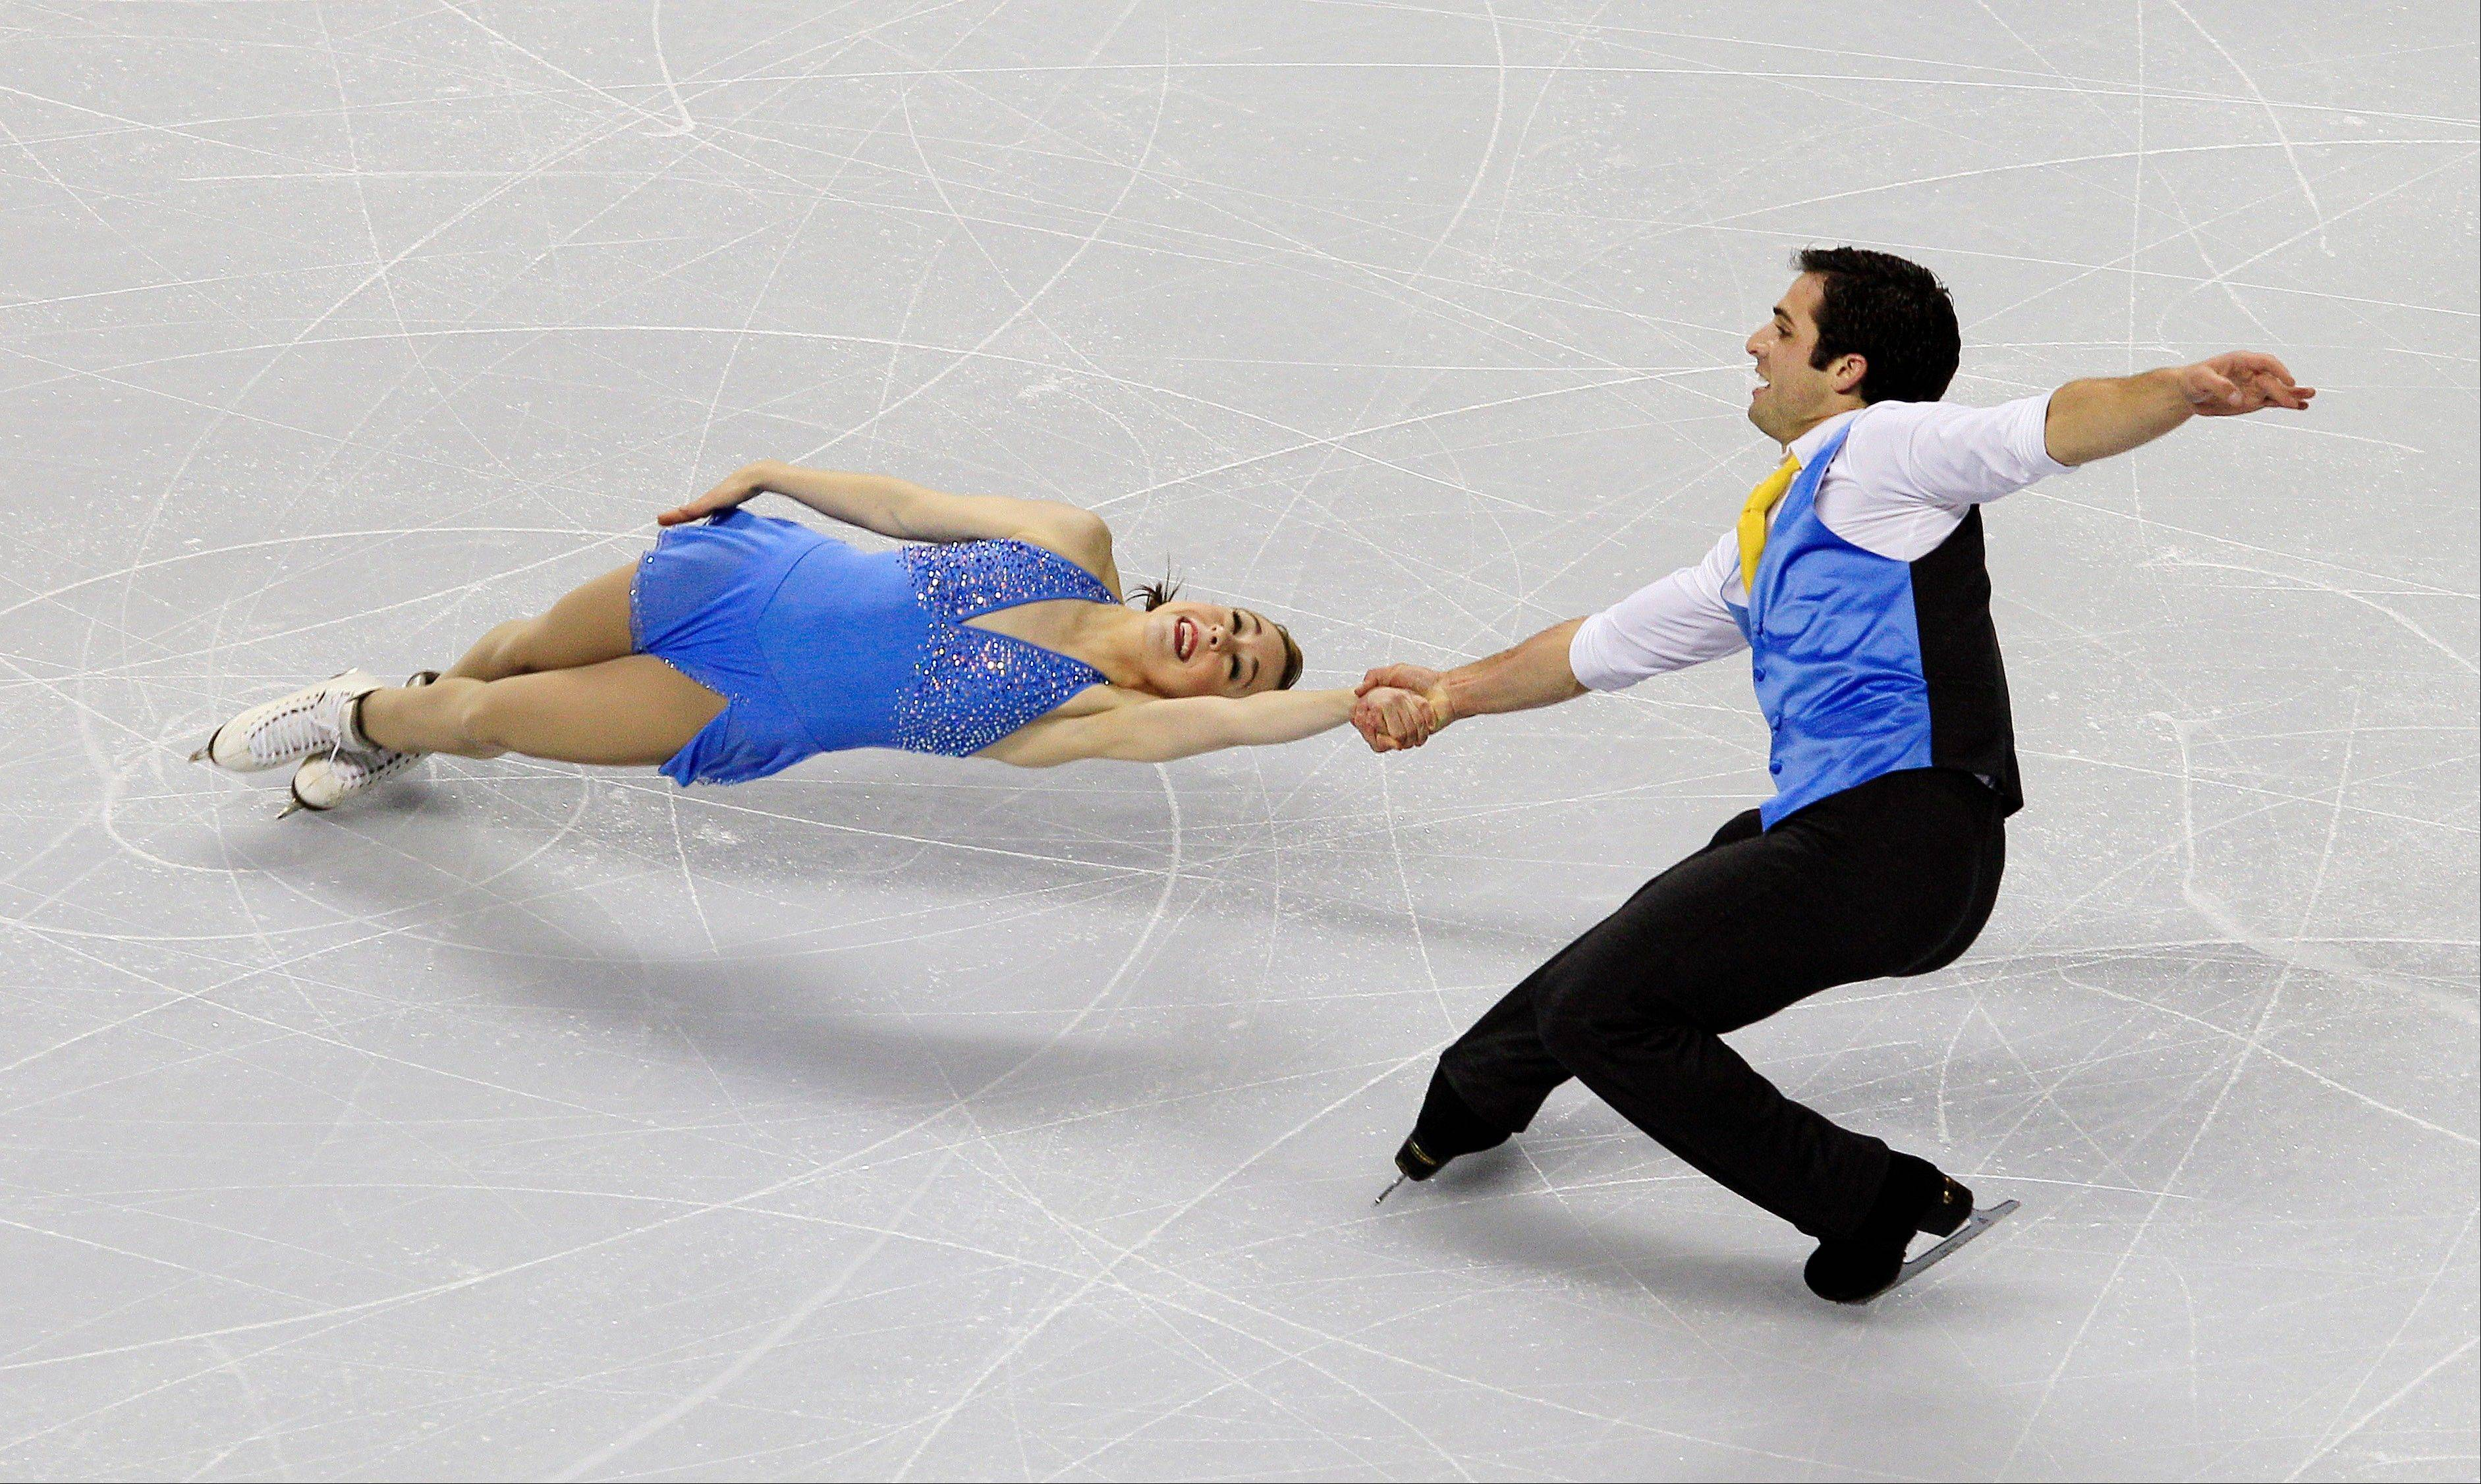 Mary Beth Marley and Rockne Brubaker perform during the pairs short program competition Thursday at the U.S. Figure Skating Championships.